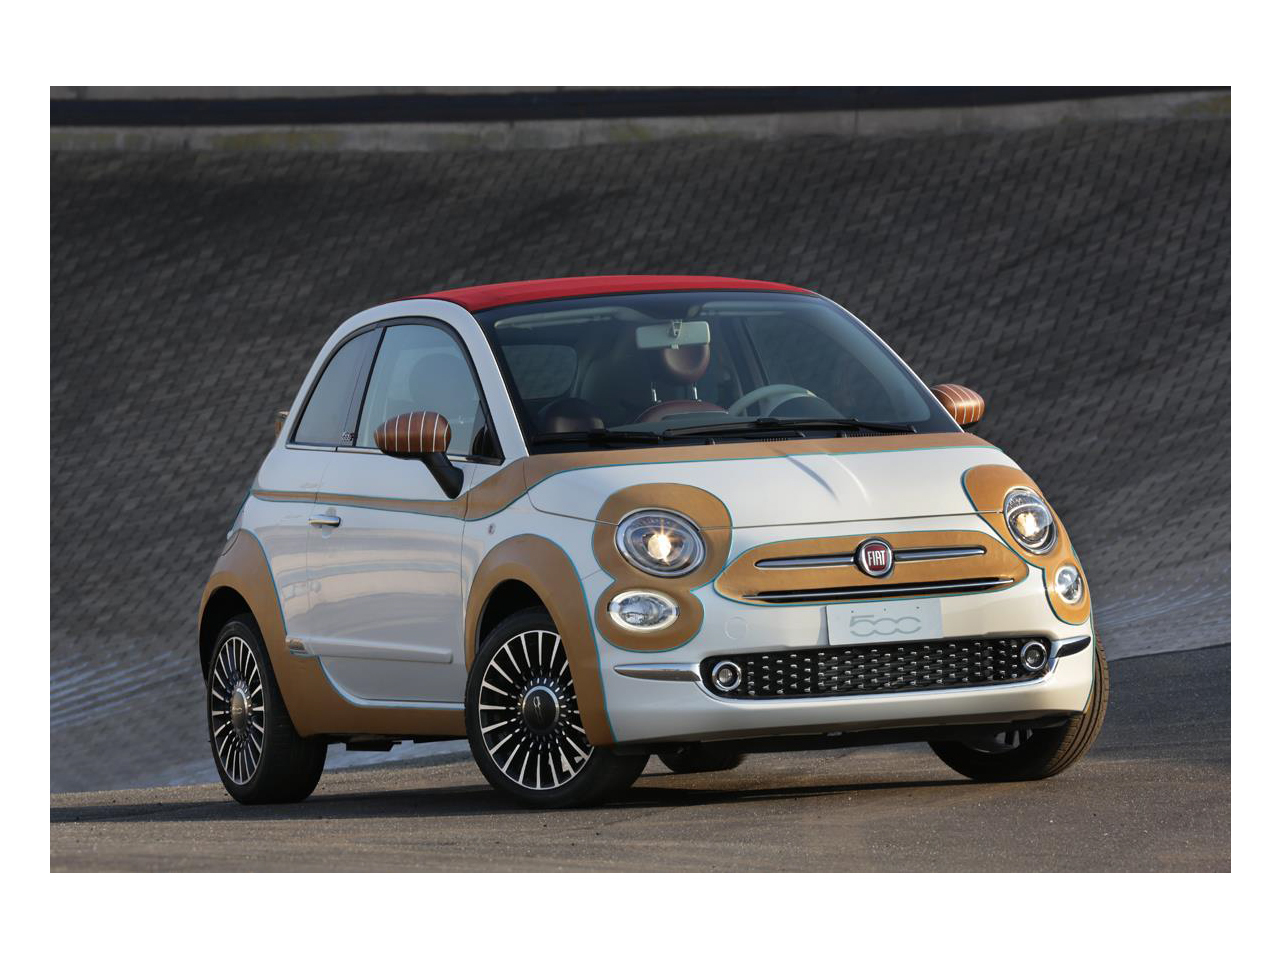 nouvelle fiat 500 2015 le premier exemplaire vendu 55 000 euros l 39 argus. Black Bedroom Furniture Sets. Home Design Ideas